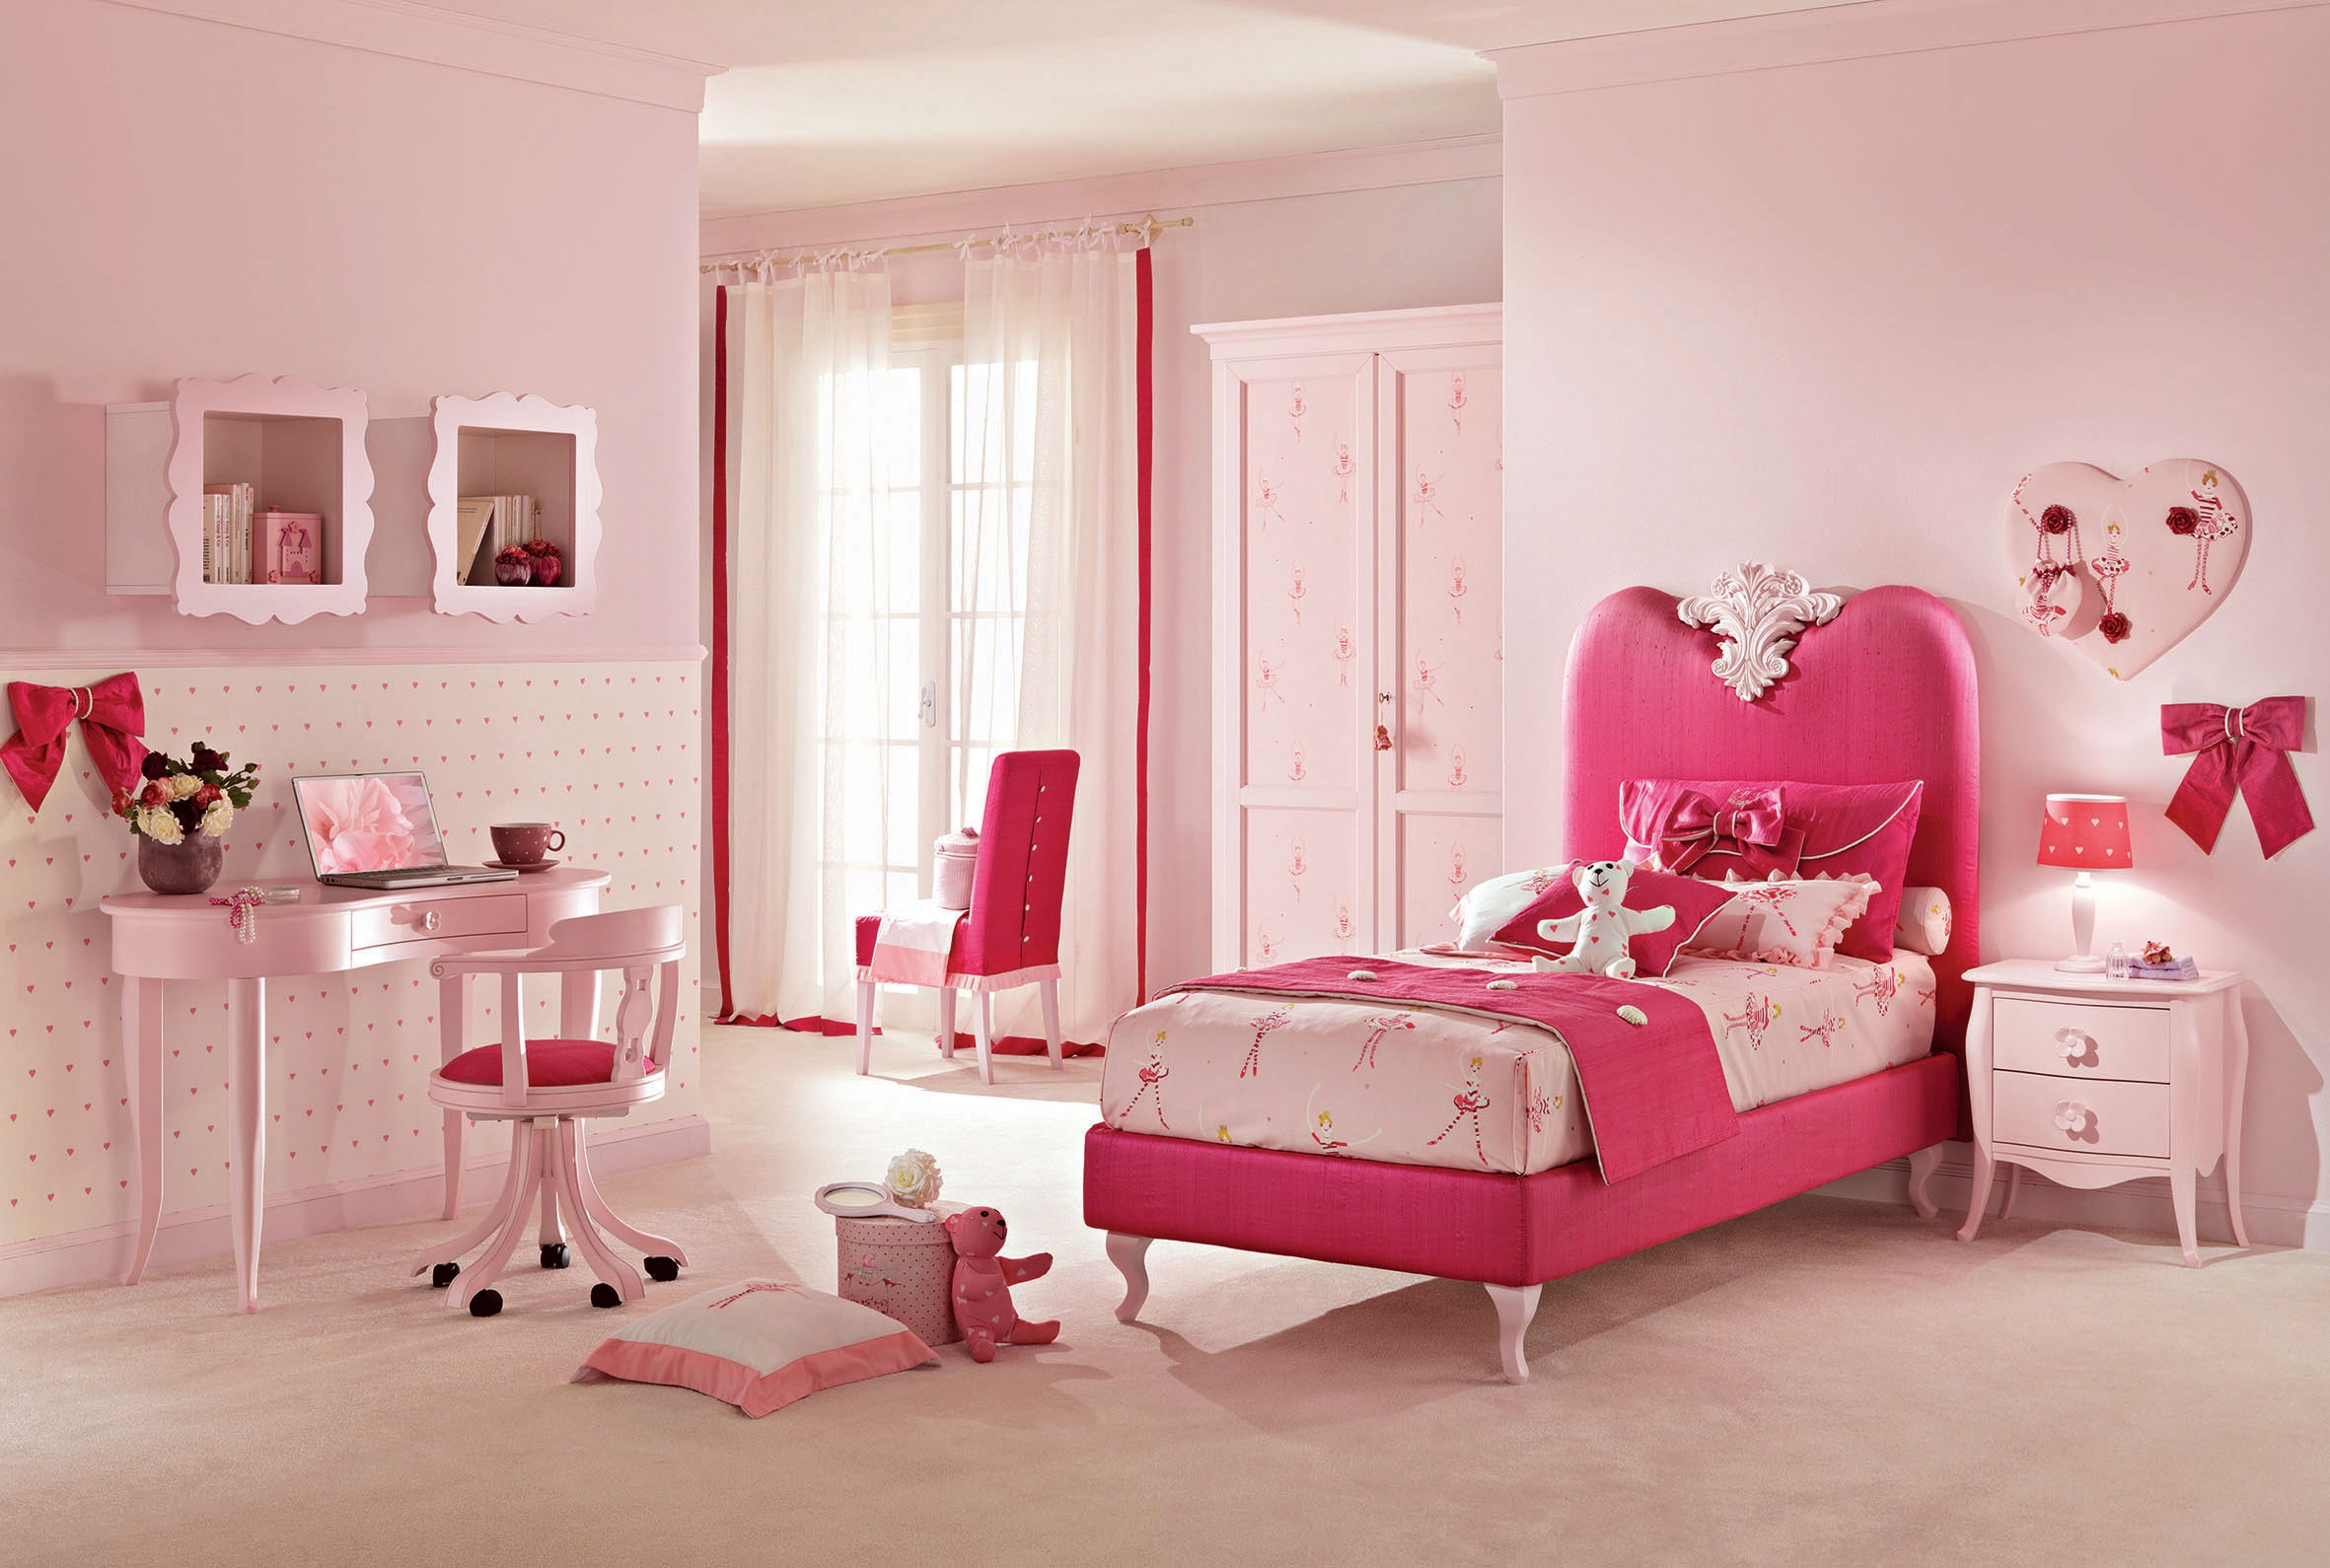 ba13 decoration chambre gascity for On chambre a coucher rose fushia